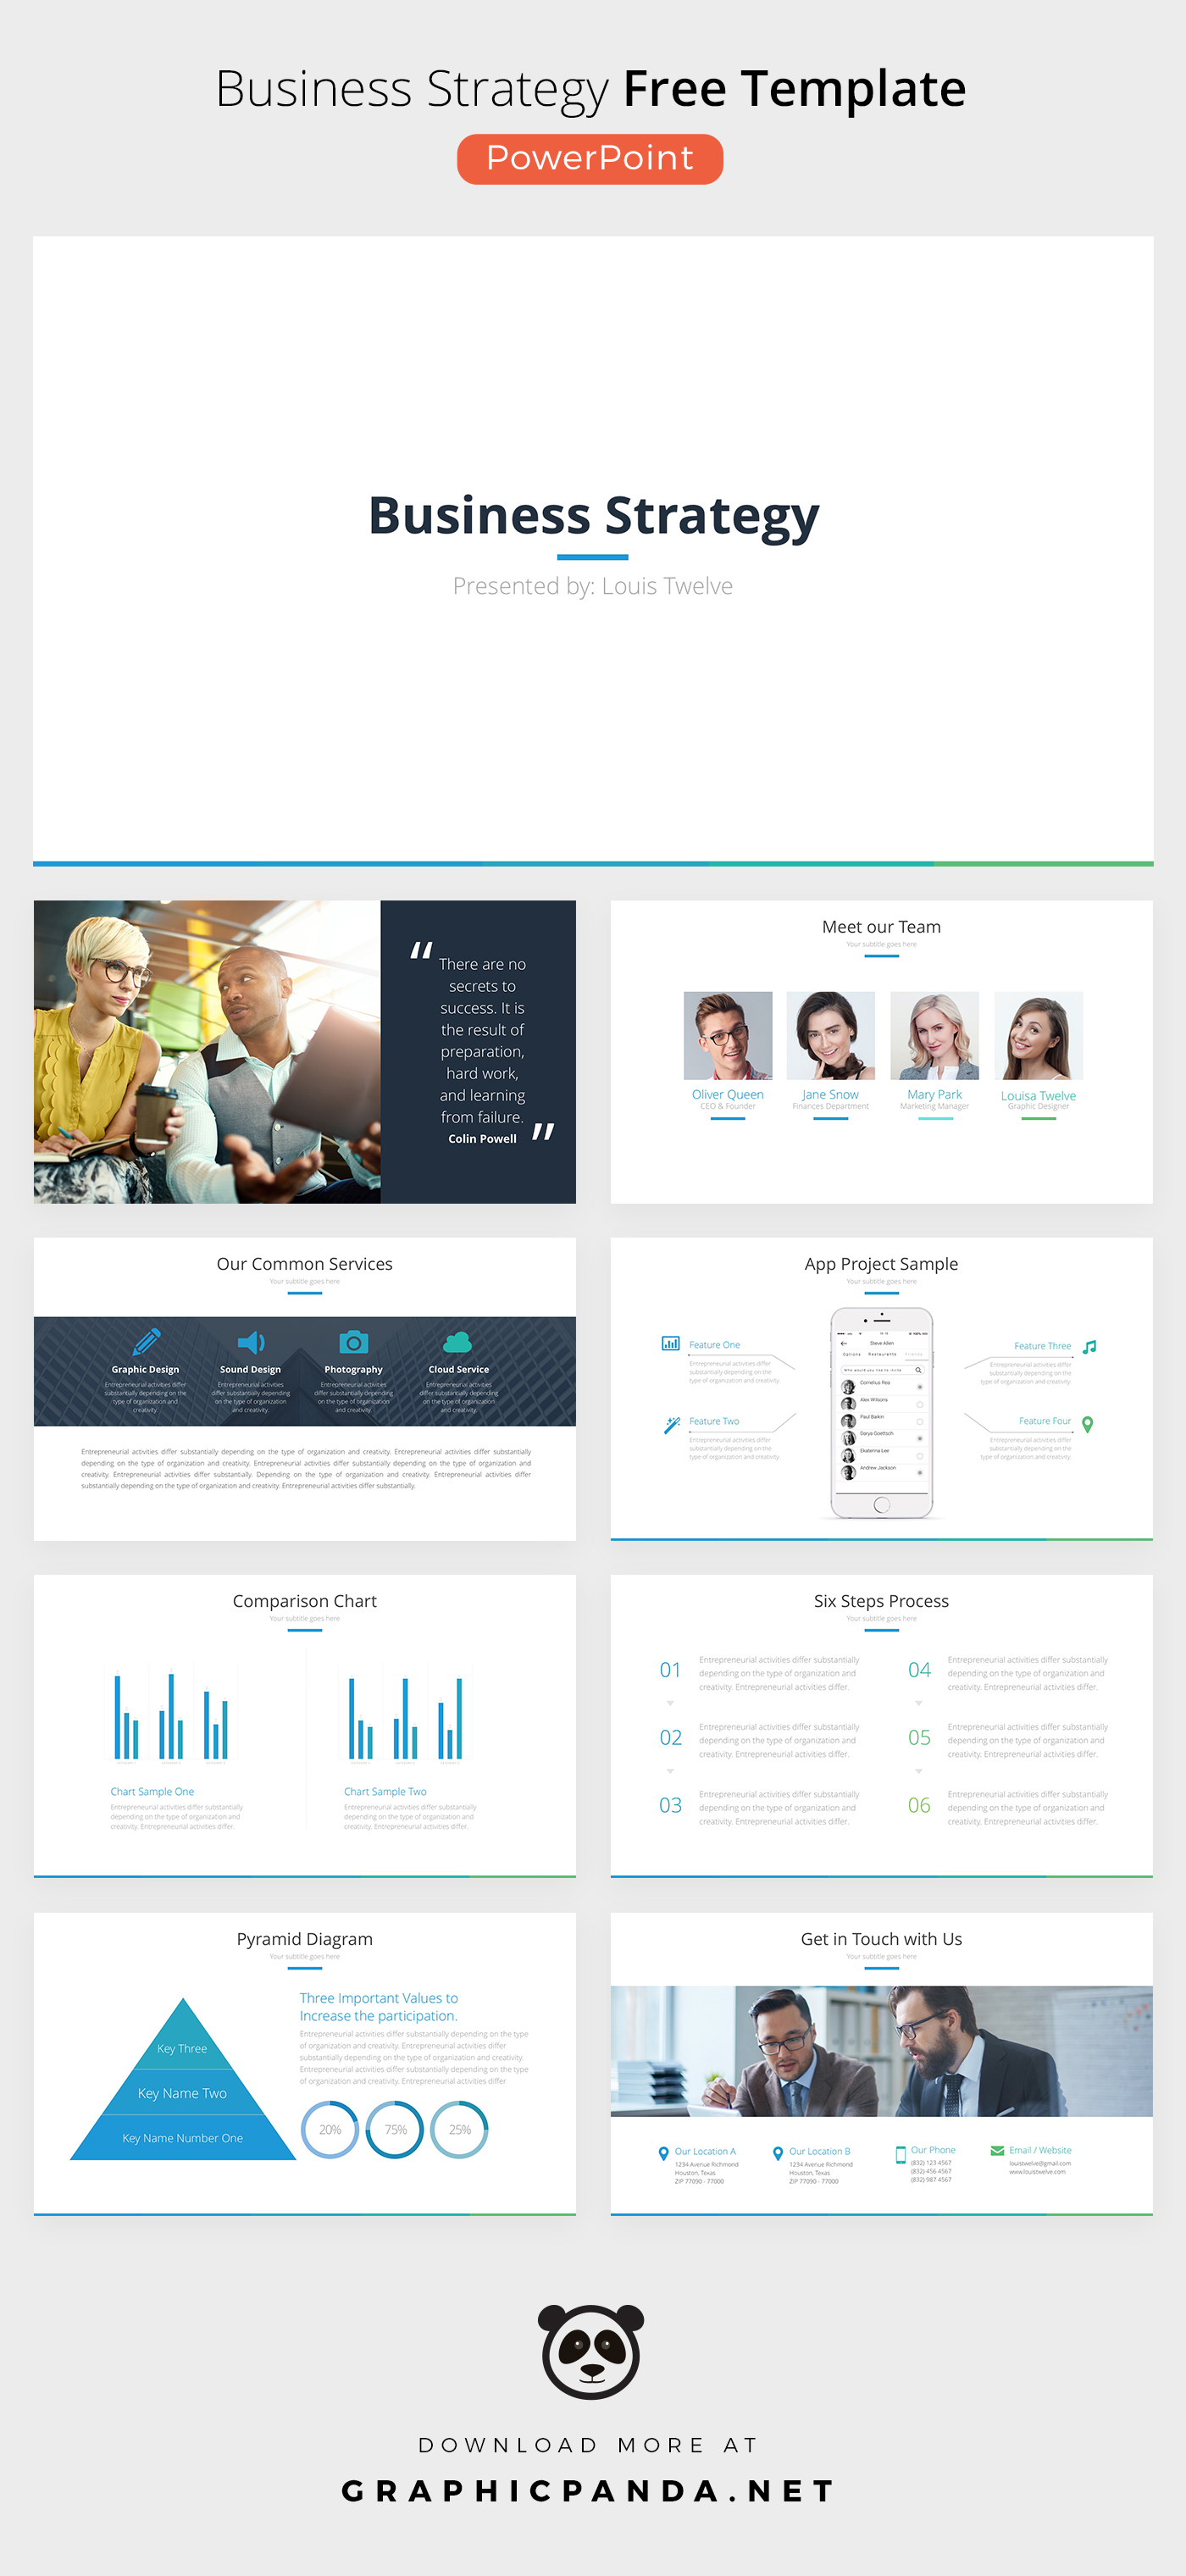 Free business strategy powerpoint template on behance if youre struggling with making a well designed presentation then this business strategy free powerpoint template can help you achieve the creative and cheaphphosting Image collections